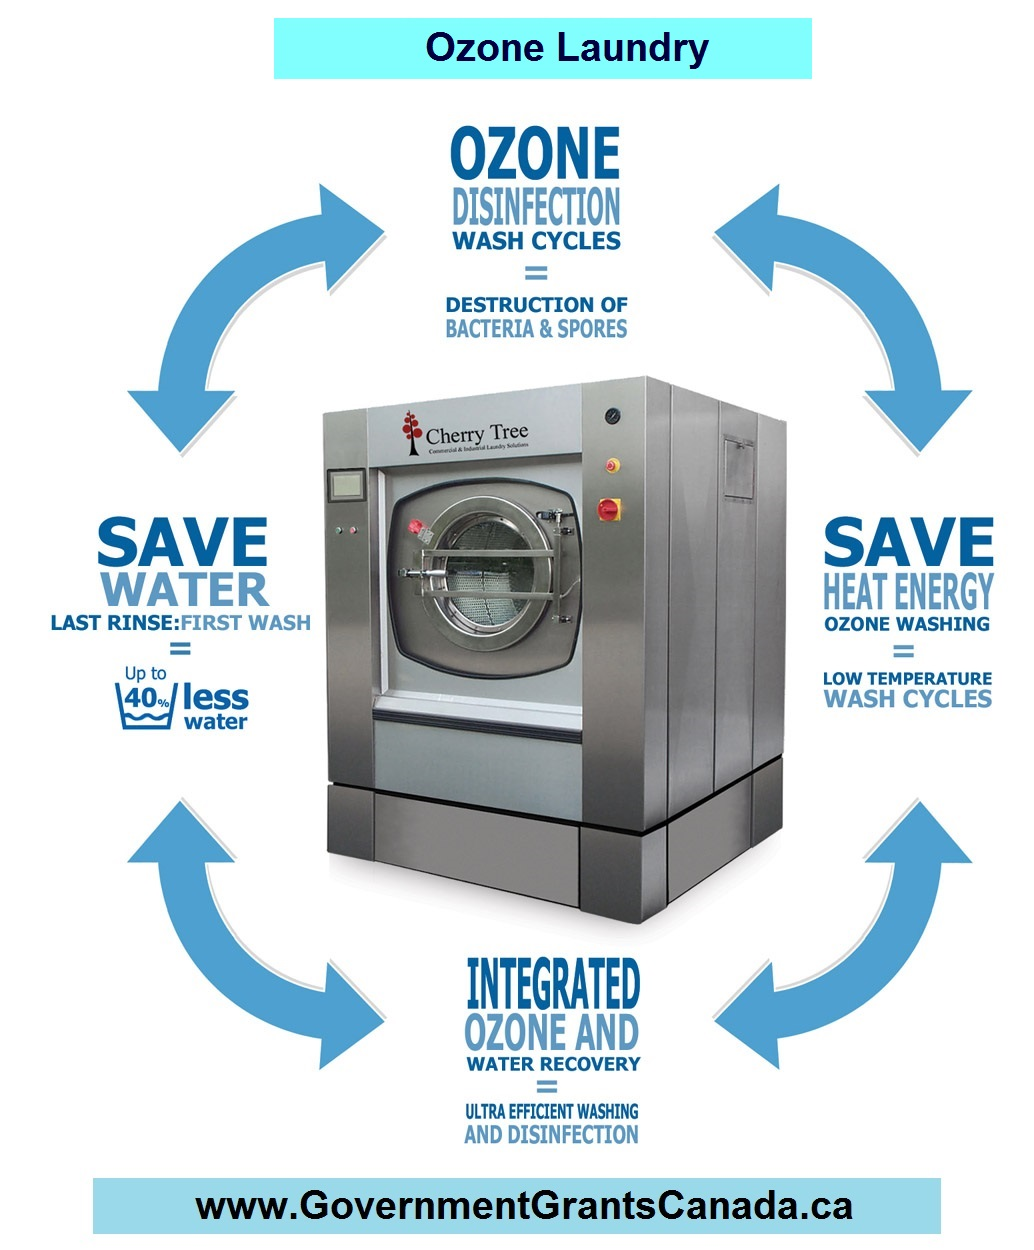 Ozone Laundry | Government Grants Canada